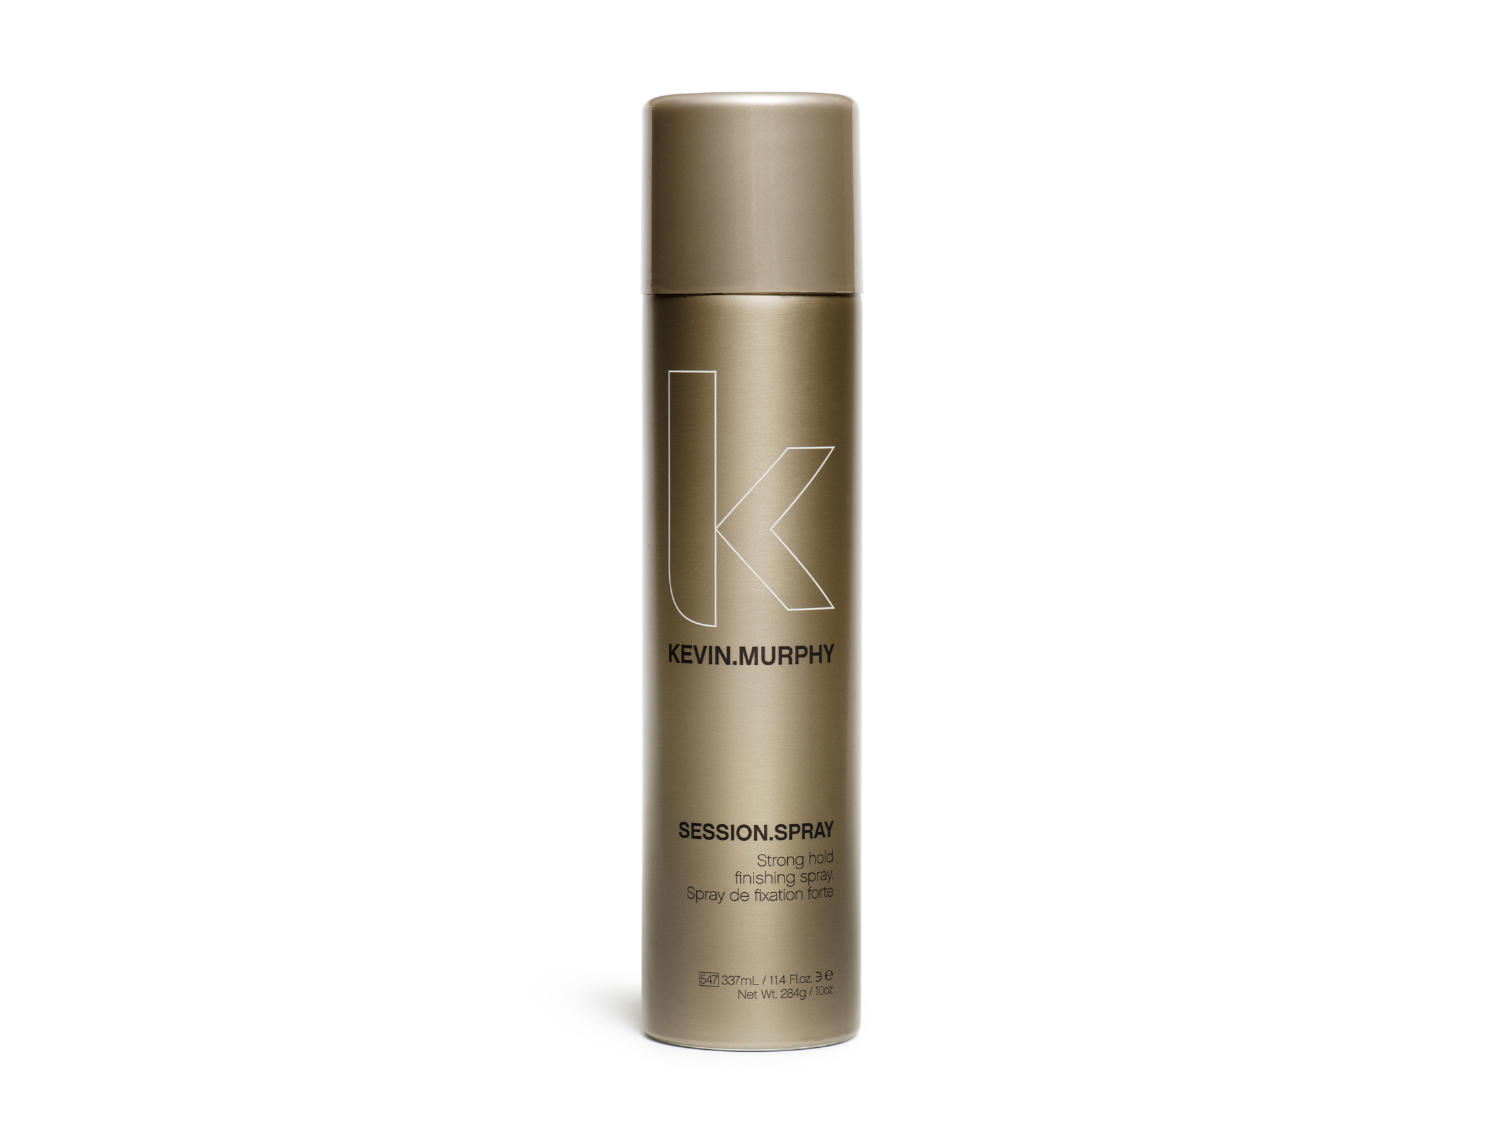 Arma Beauty - Kevin Murphy - SESSION.SPRAY